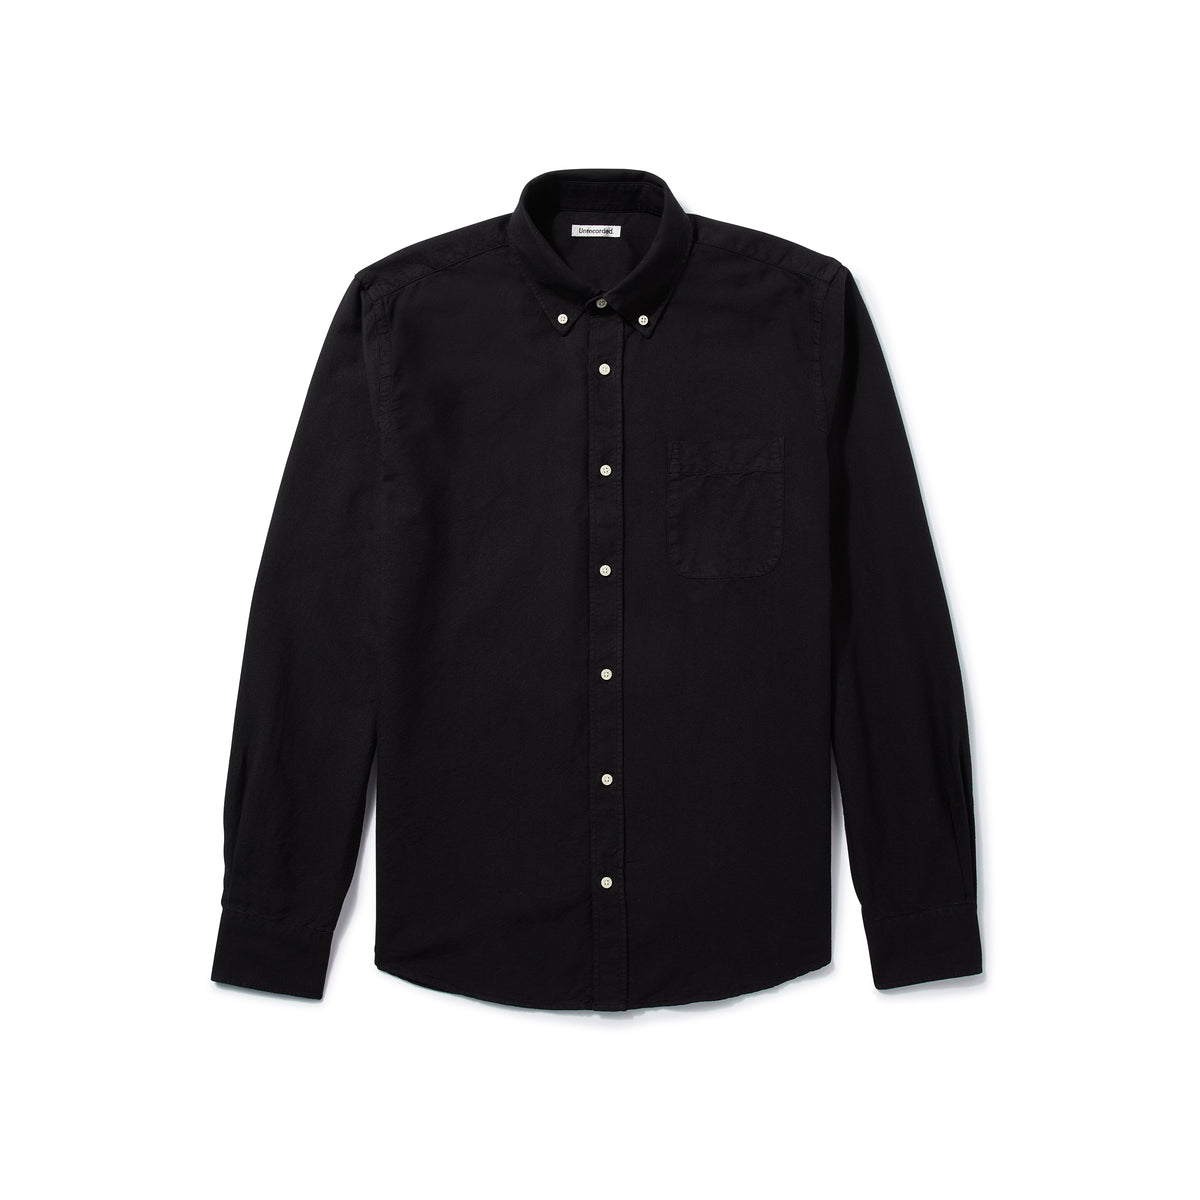 Oxford Shirt in Black made from Organic Cotton - Alternate